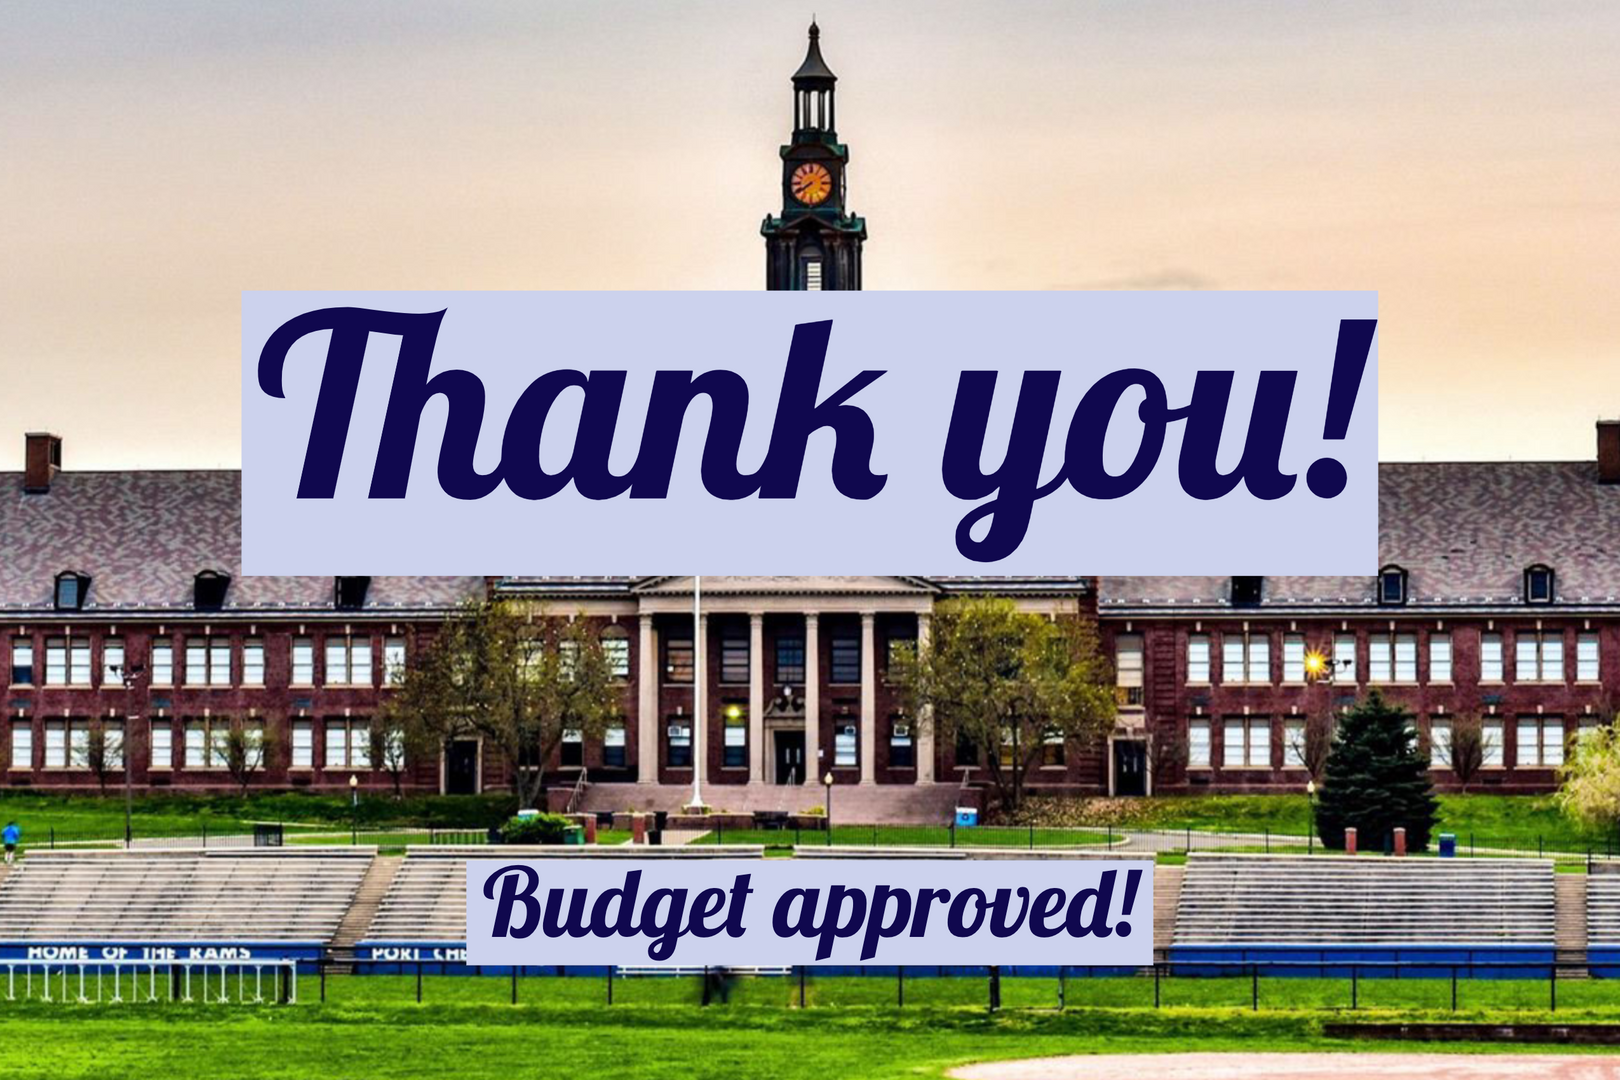 Budget thank you graphic